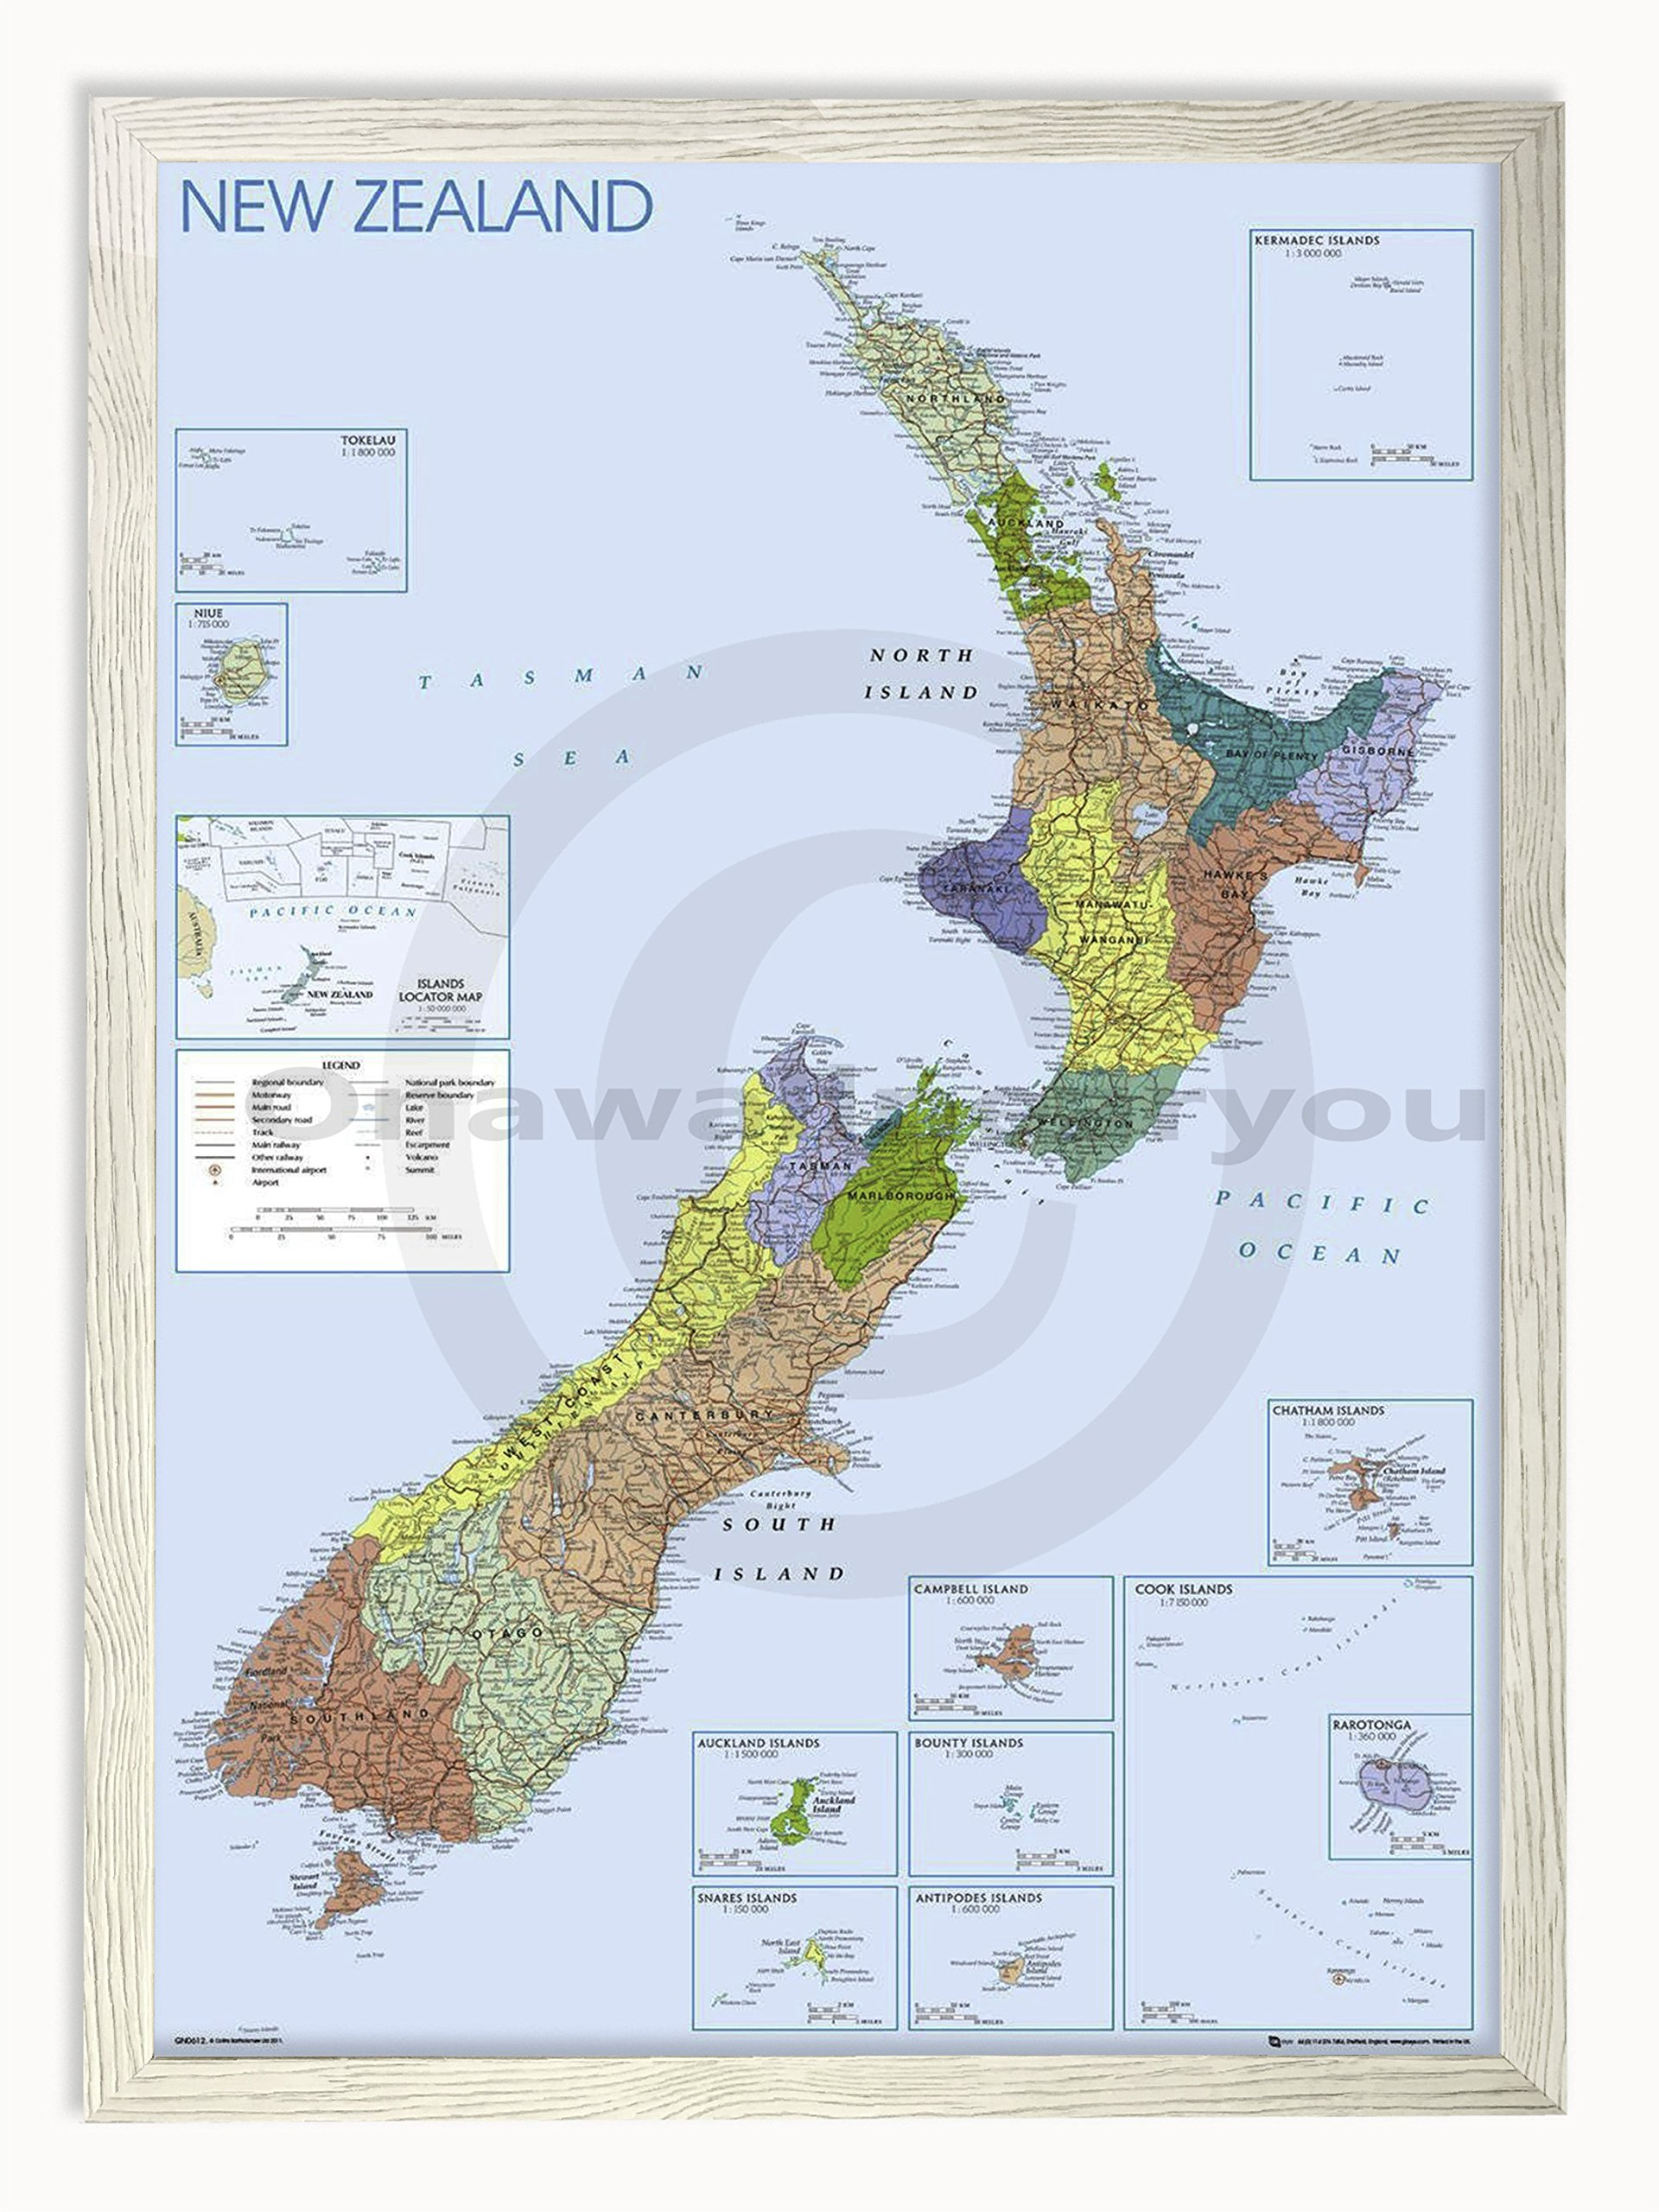 Laminated Posters Framed - Map of New Zealand - Push Pin Memo Notice Board - White Driftwood Effect - Matt Finish - Measures 96.5 x 66 cms (38 x 26 inches - Approx)